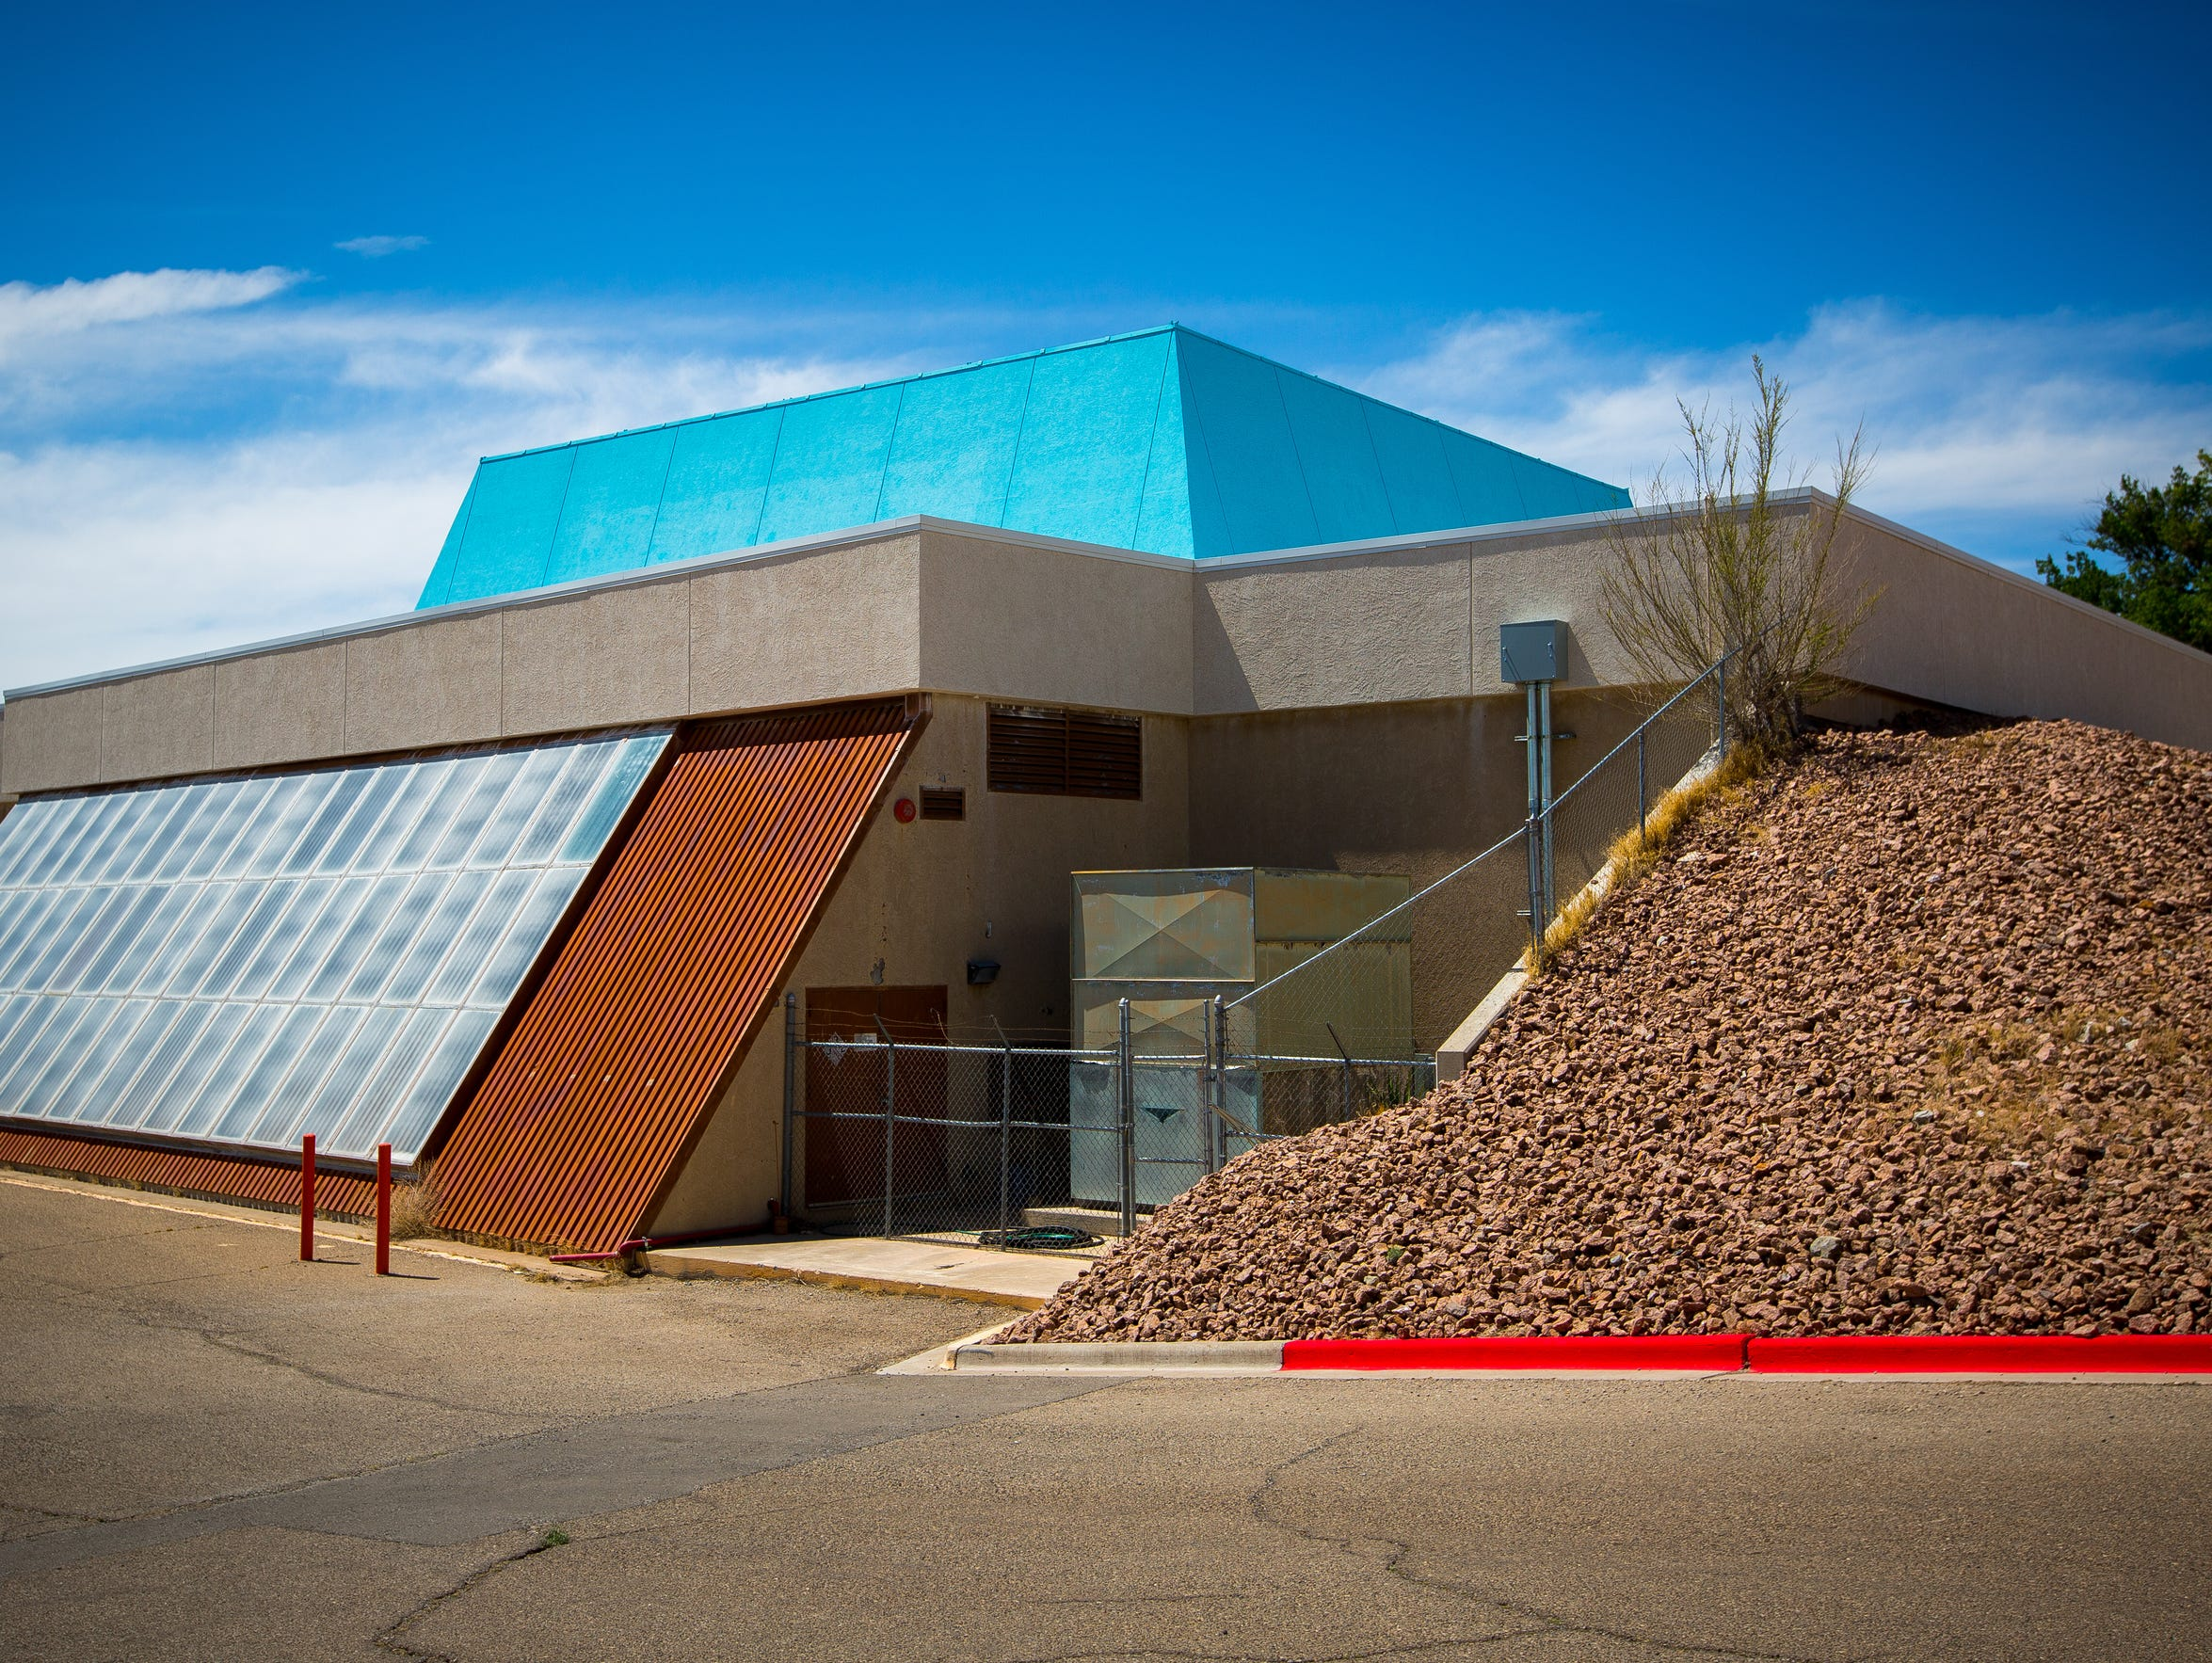 The New Horizons Dome Theater & Planetarium at the